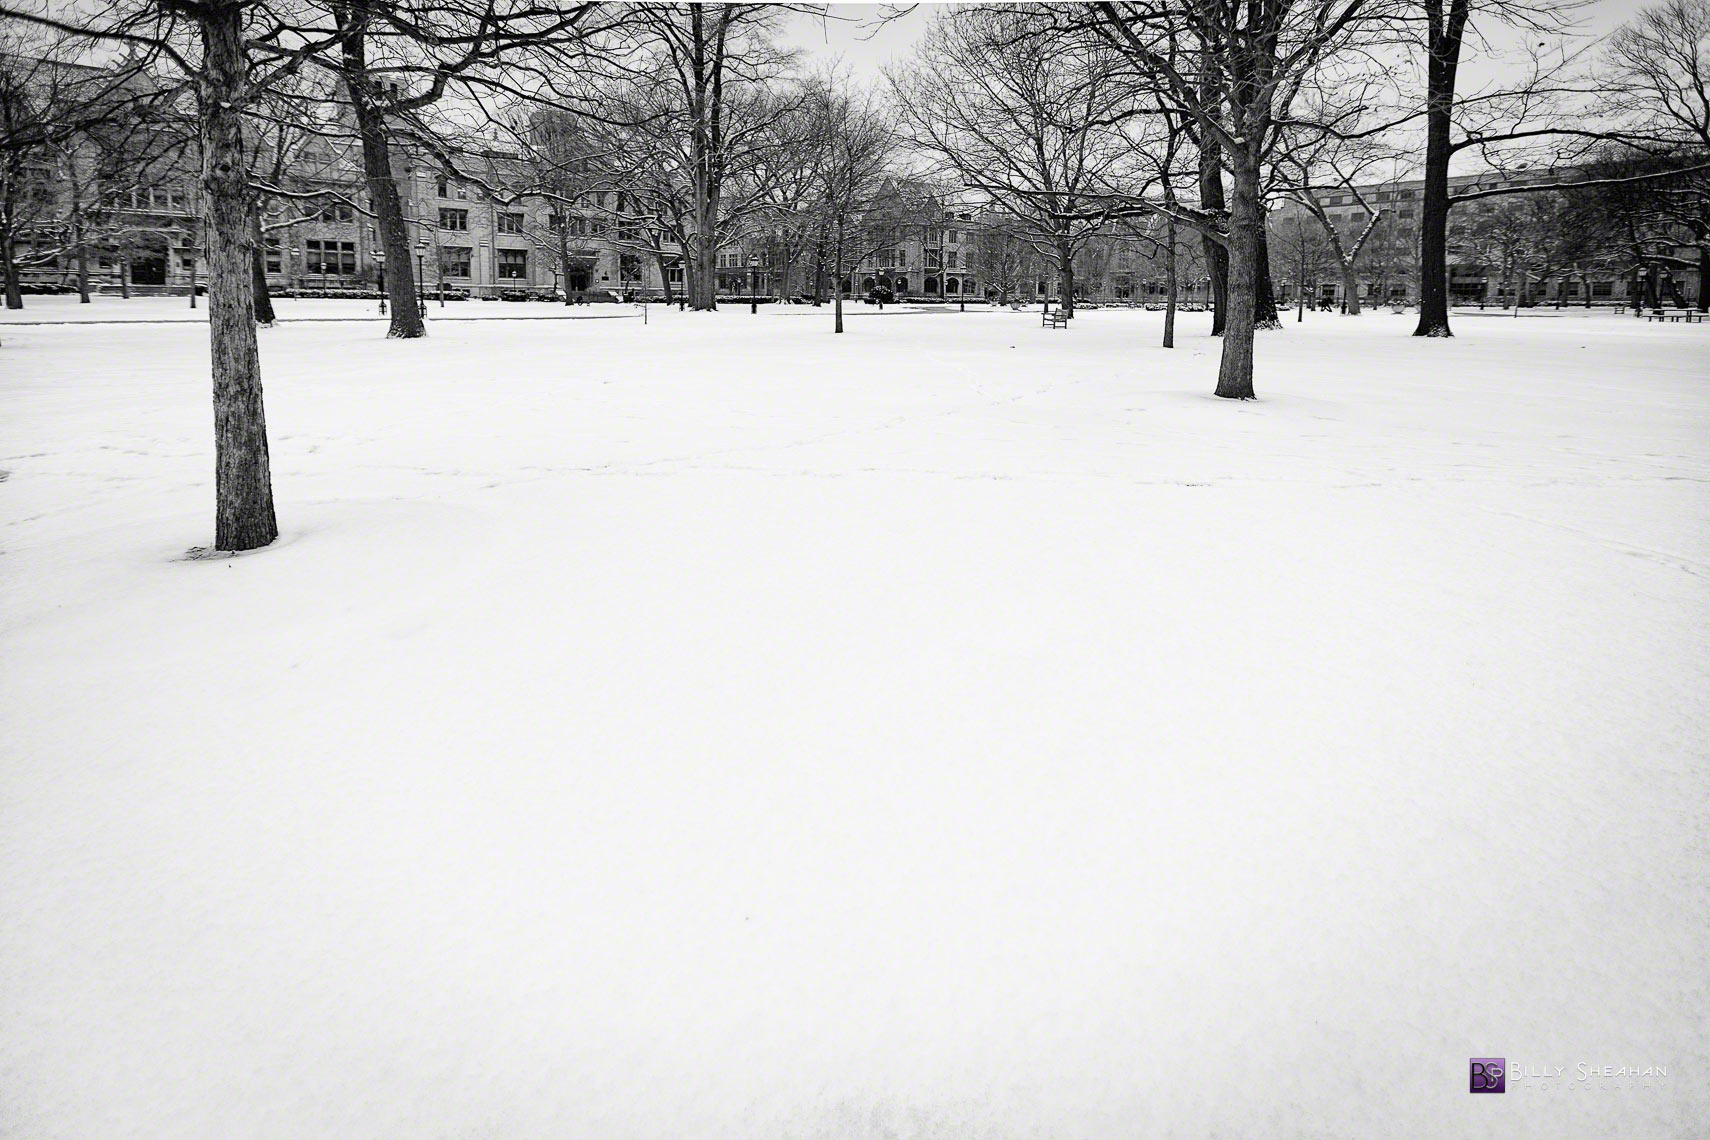 Snow Blanket University of Chicago